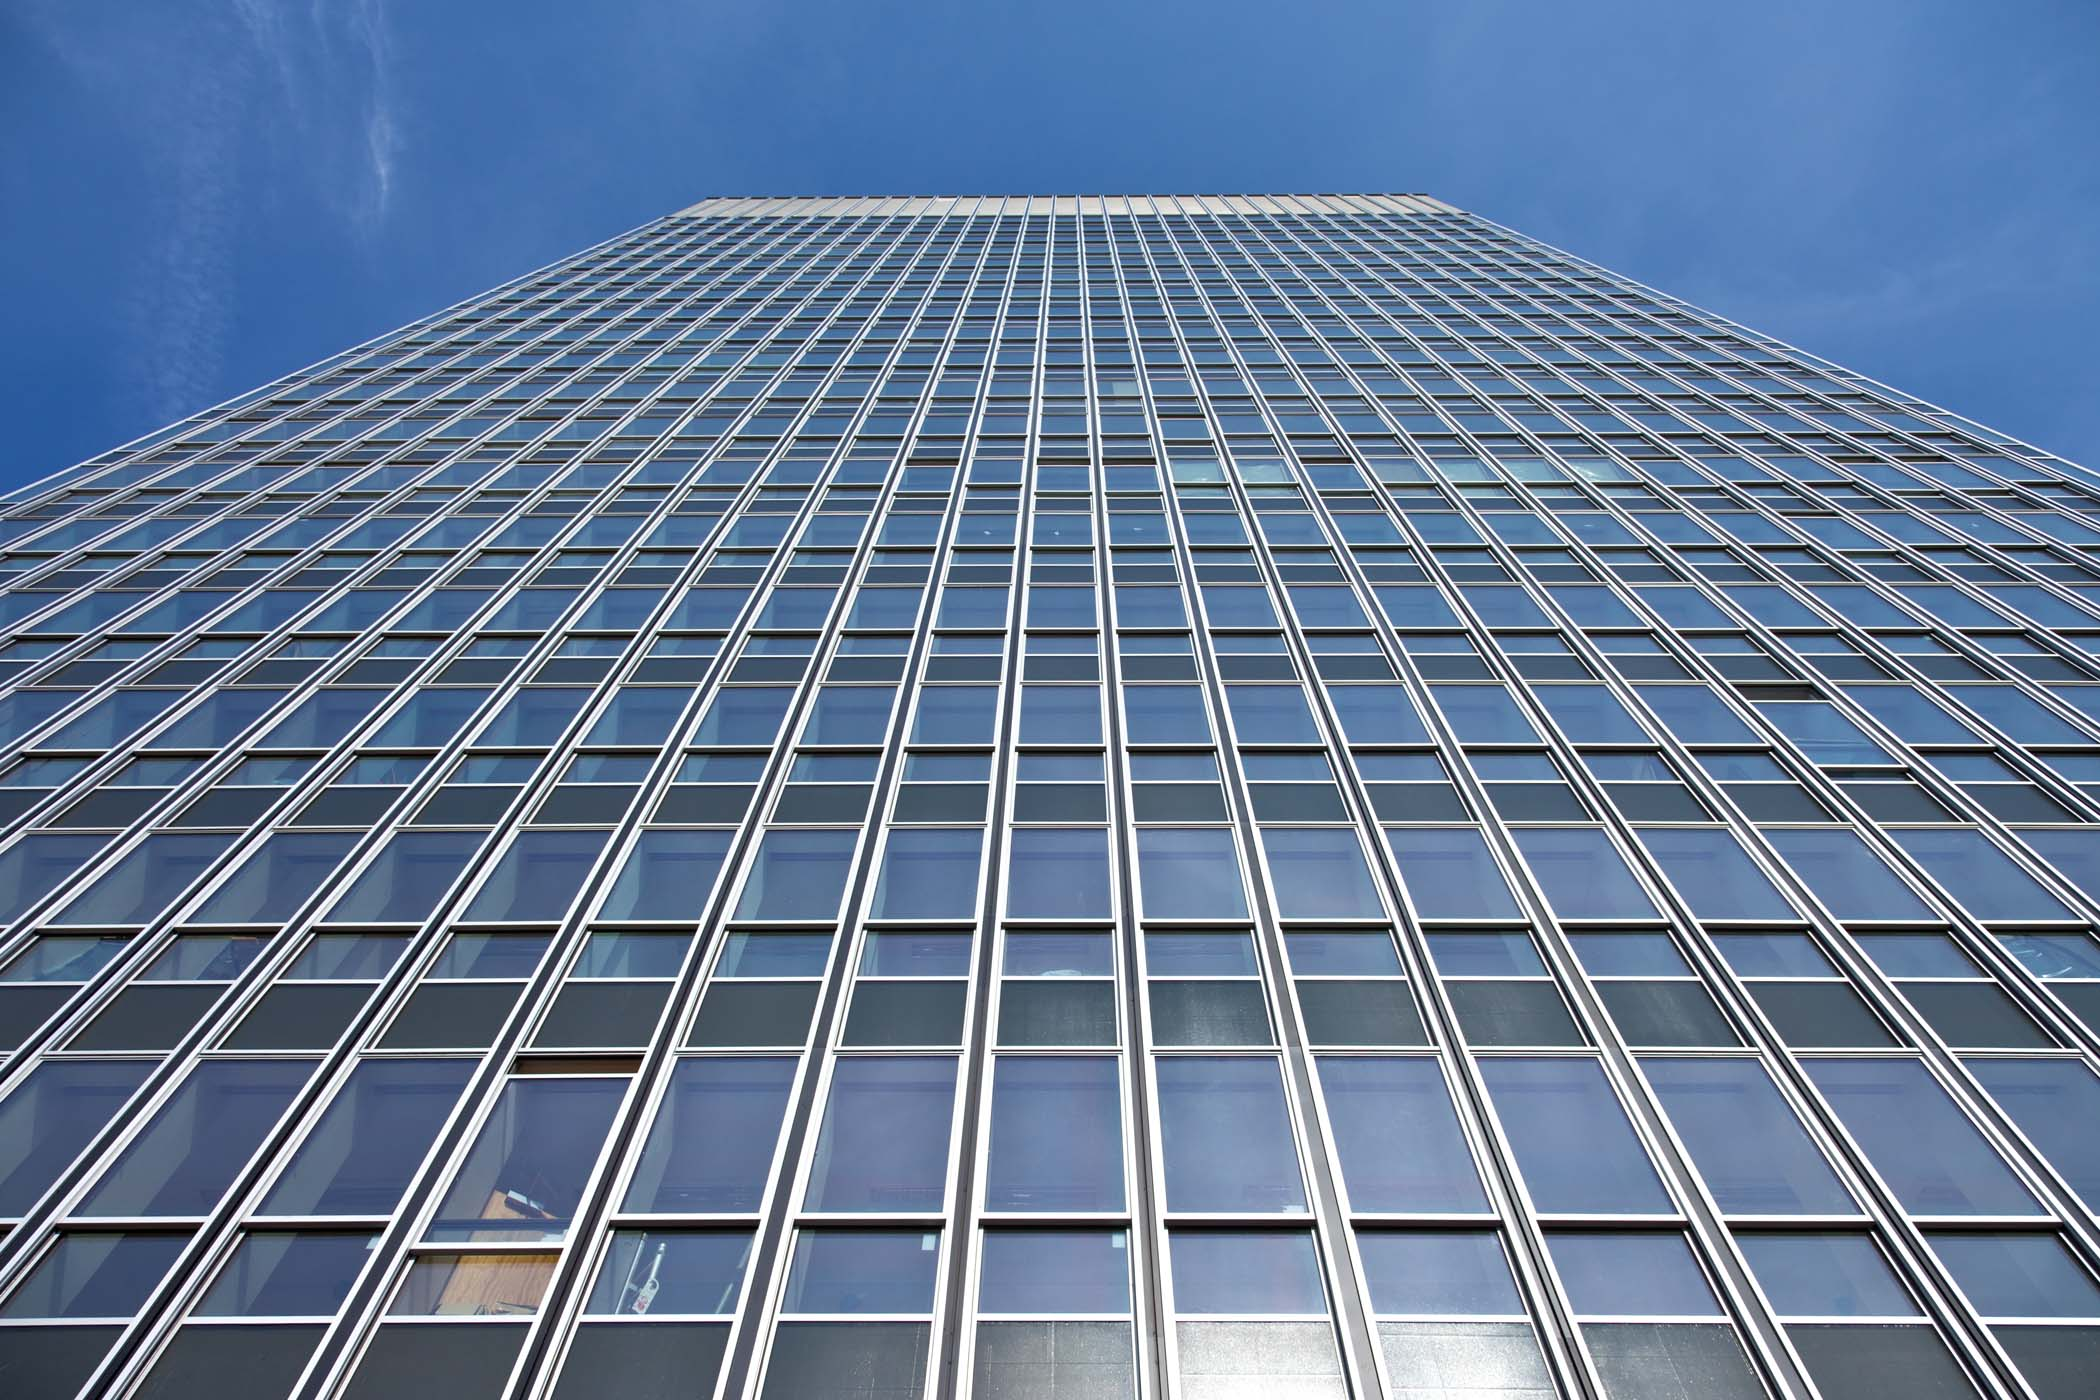 Dualslide aluminium windows from Sapa on a high-rise project